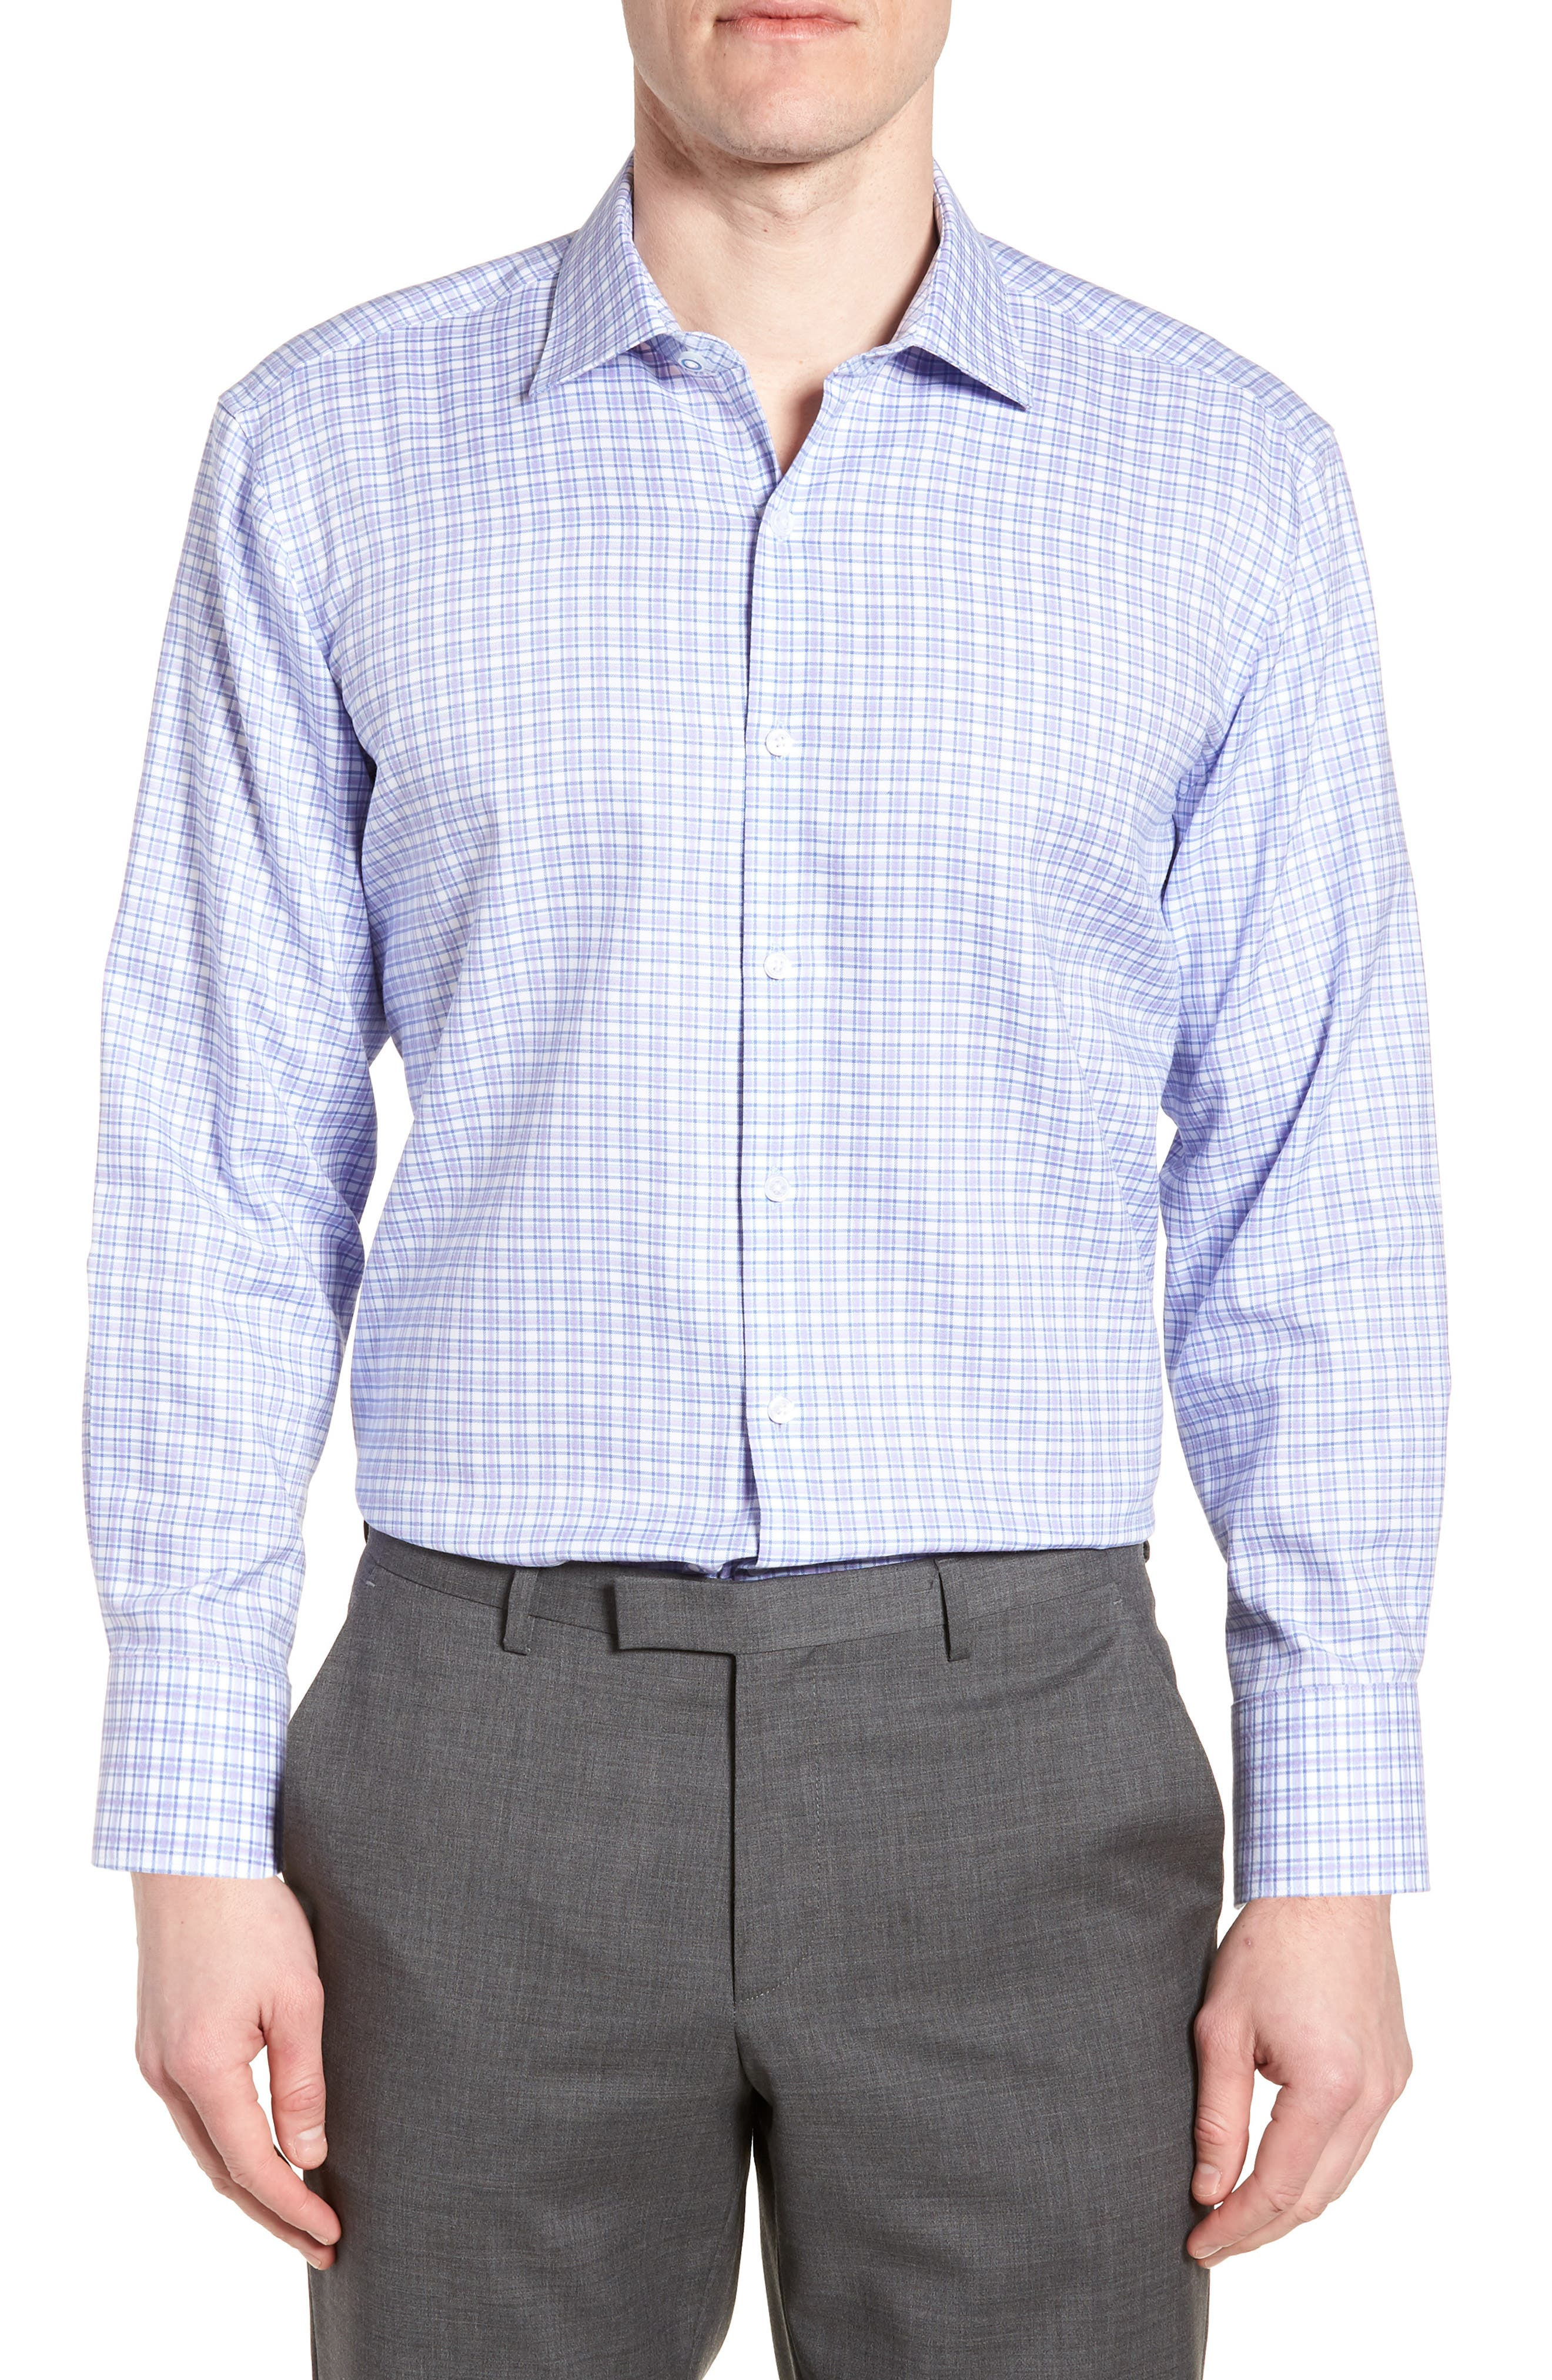 Neil Trim Fit Check Dress Shirt,                             Main thumbnail 1, color,                             530